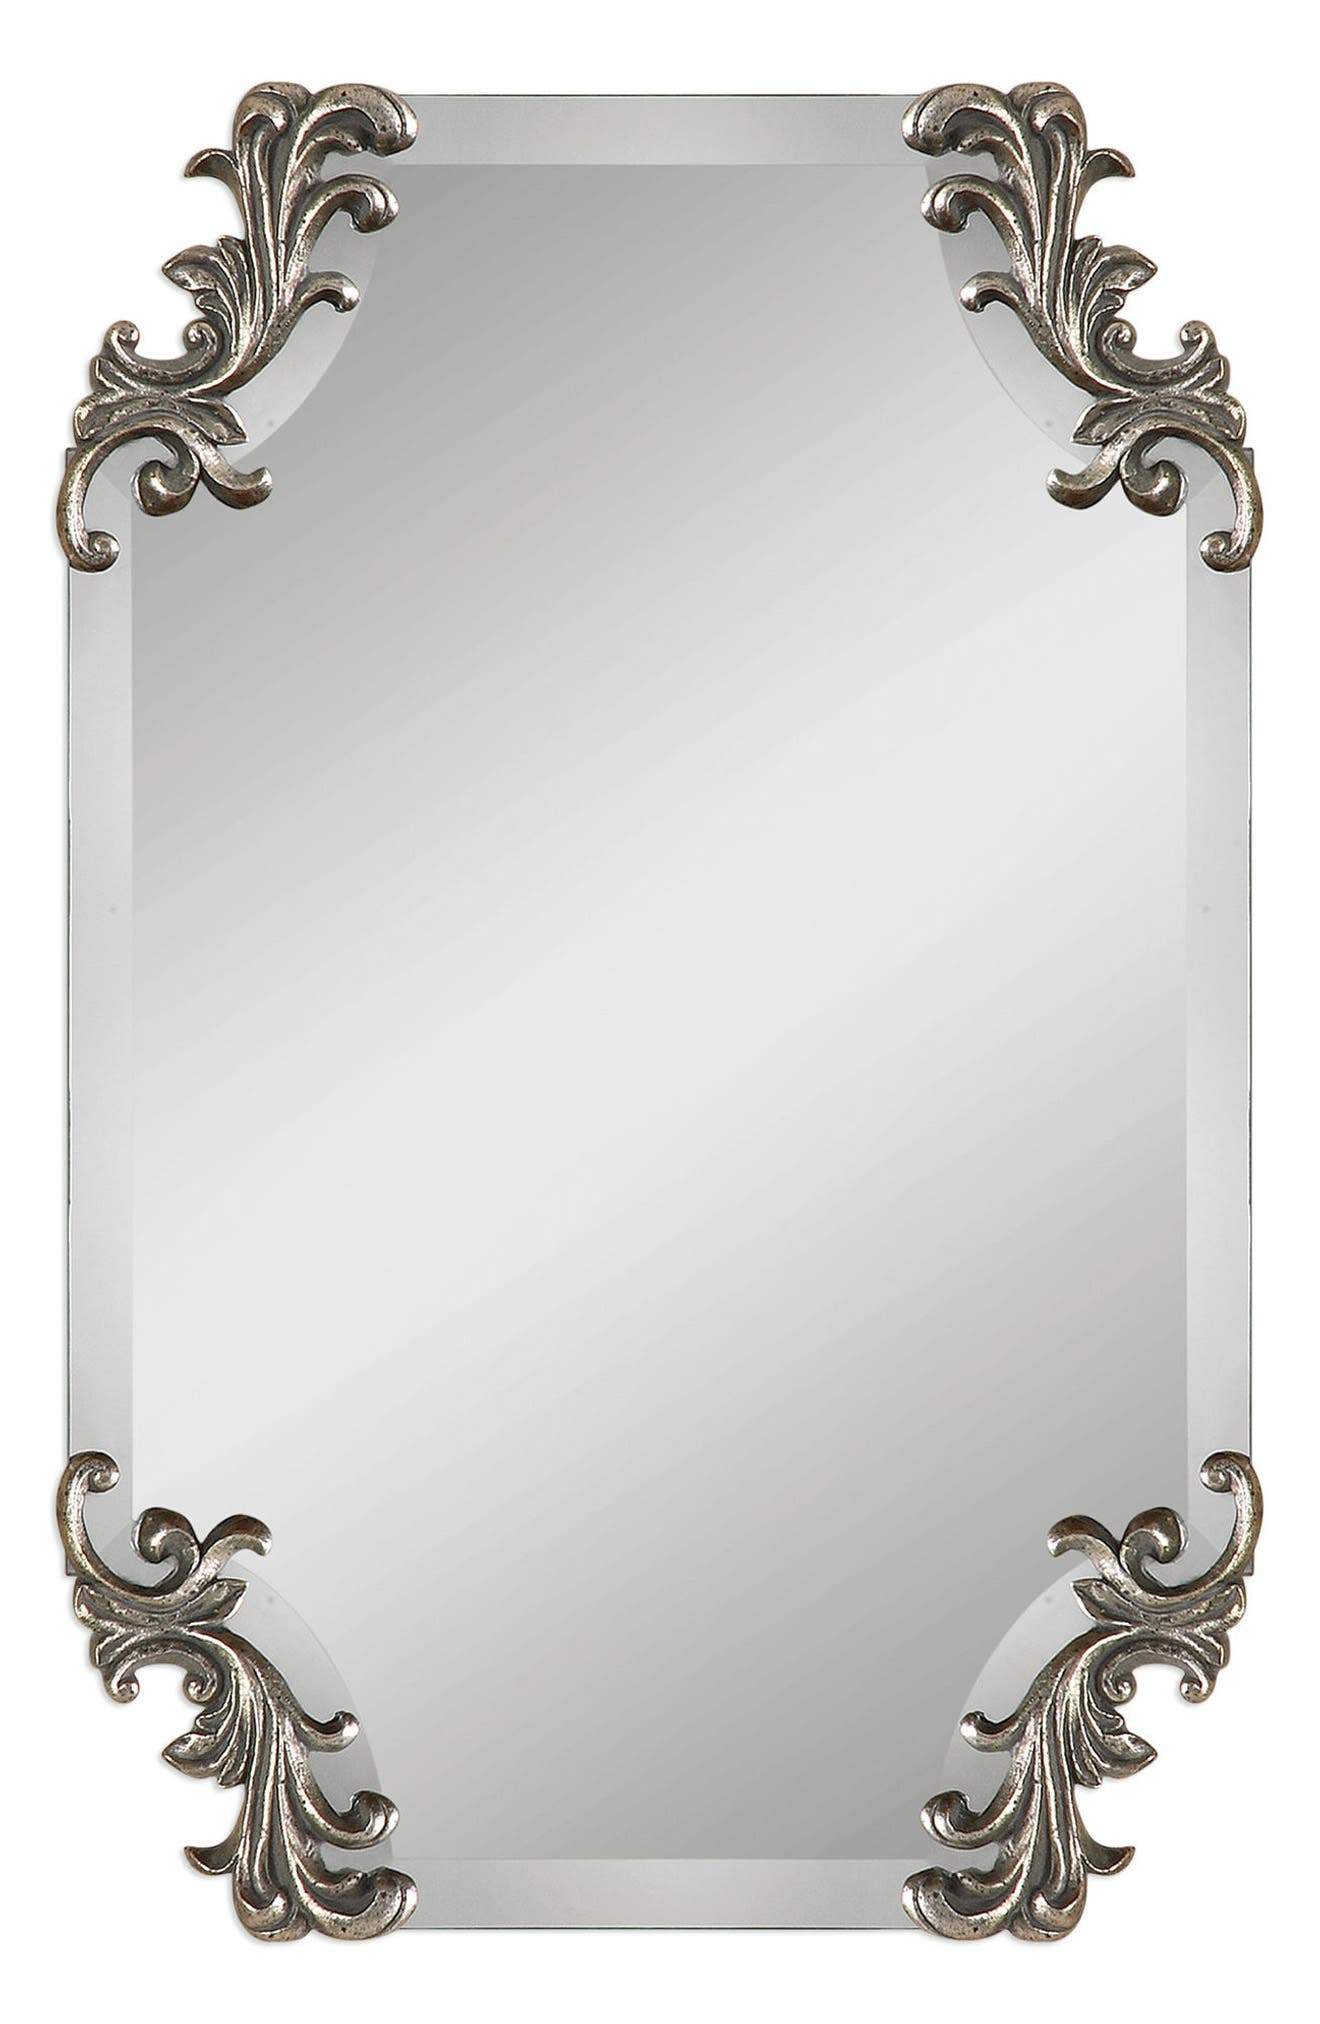 Main Image - Uttermost Andretta Baroque Wall Mirror